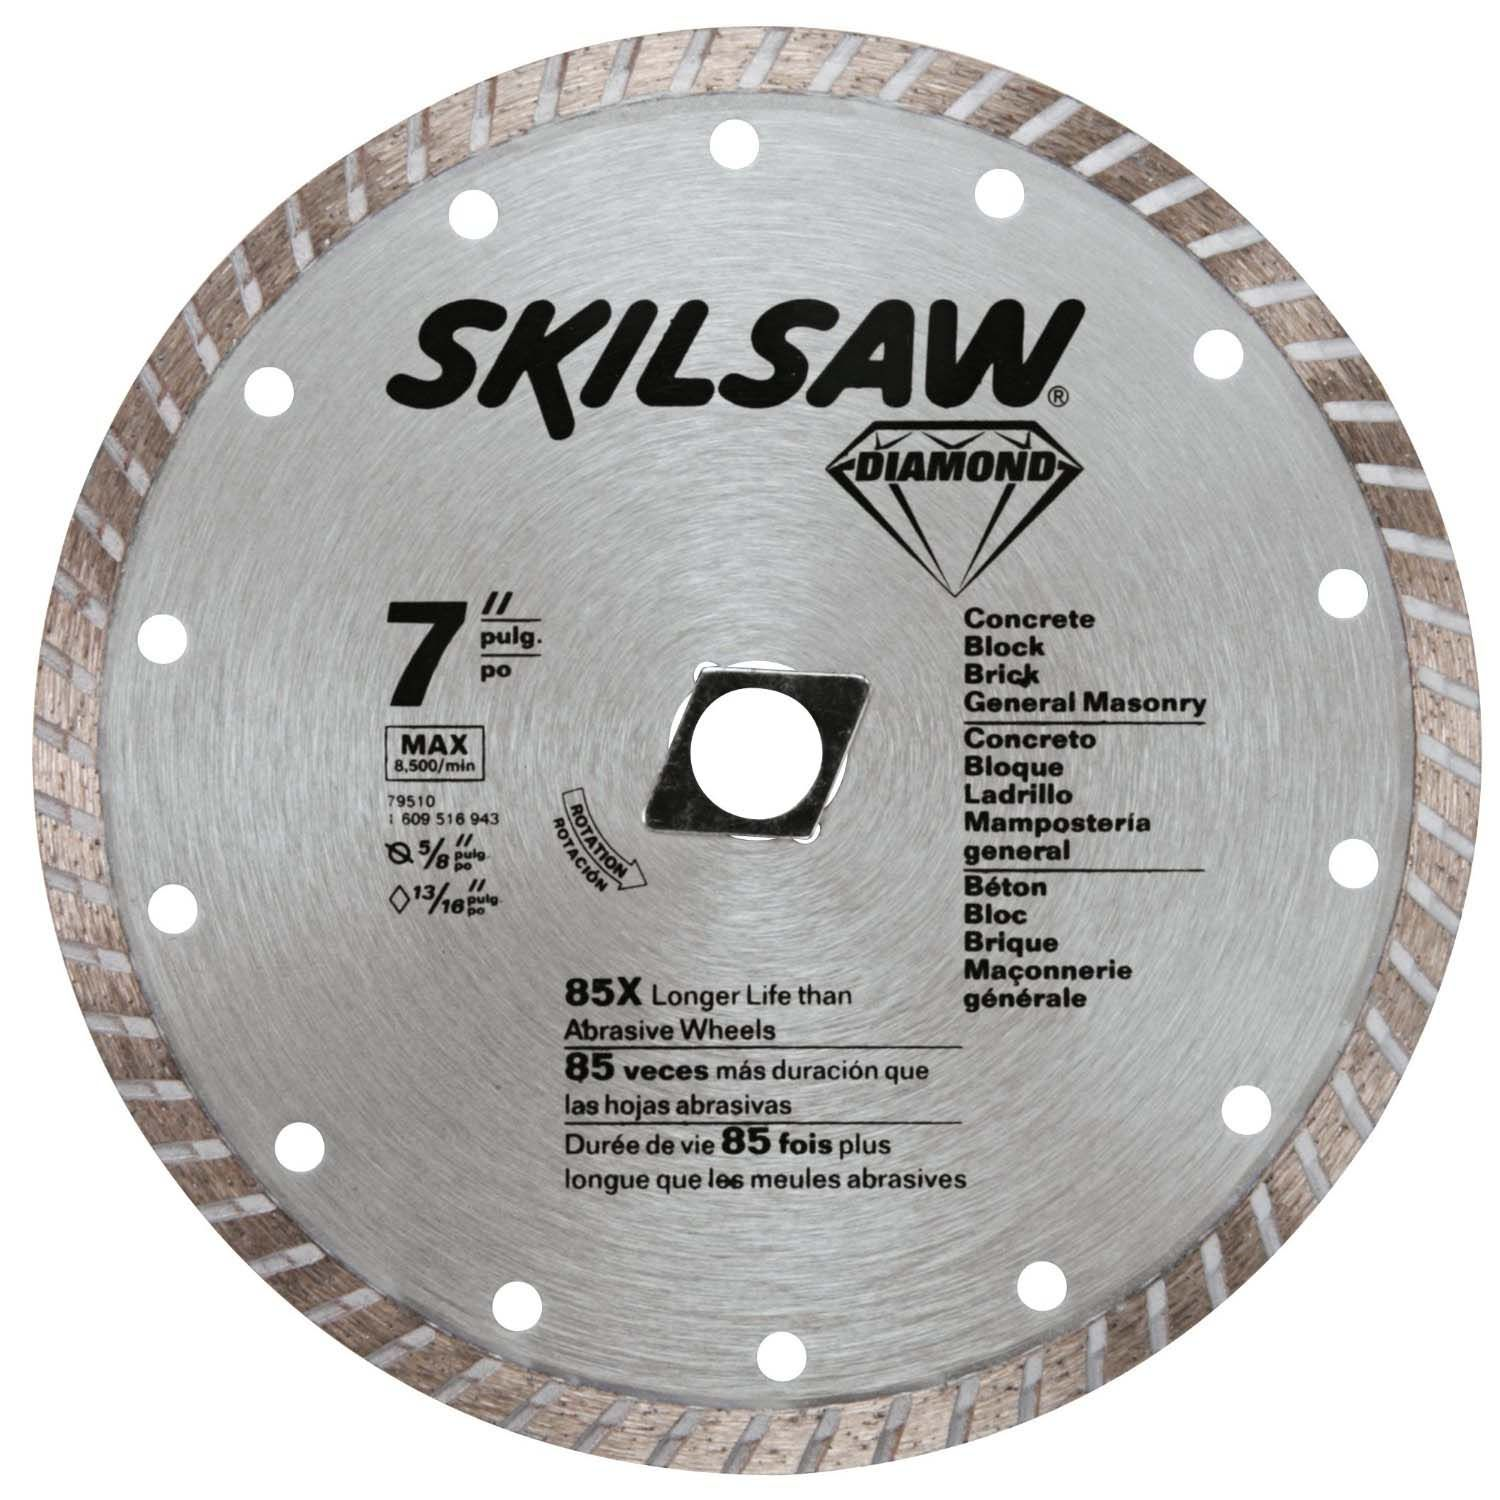 Skil Skil 7 Turbo Diamond Blade 79510 Reviews Diamond Saw Blades Diamond Blades Saw Blade